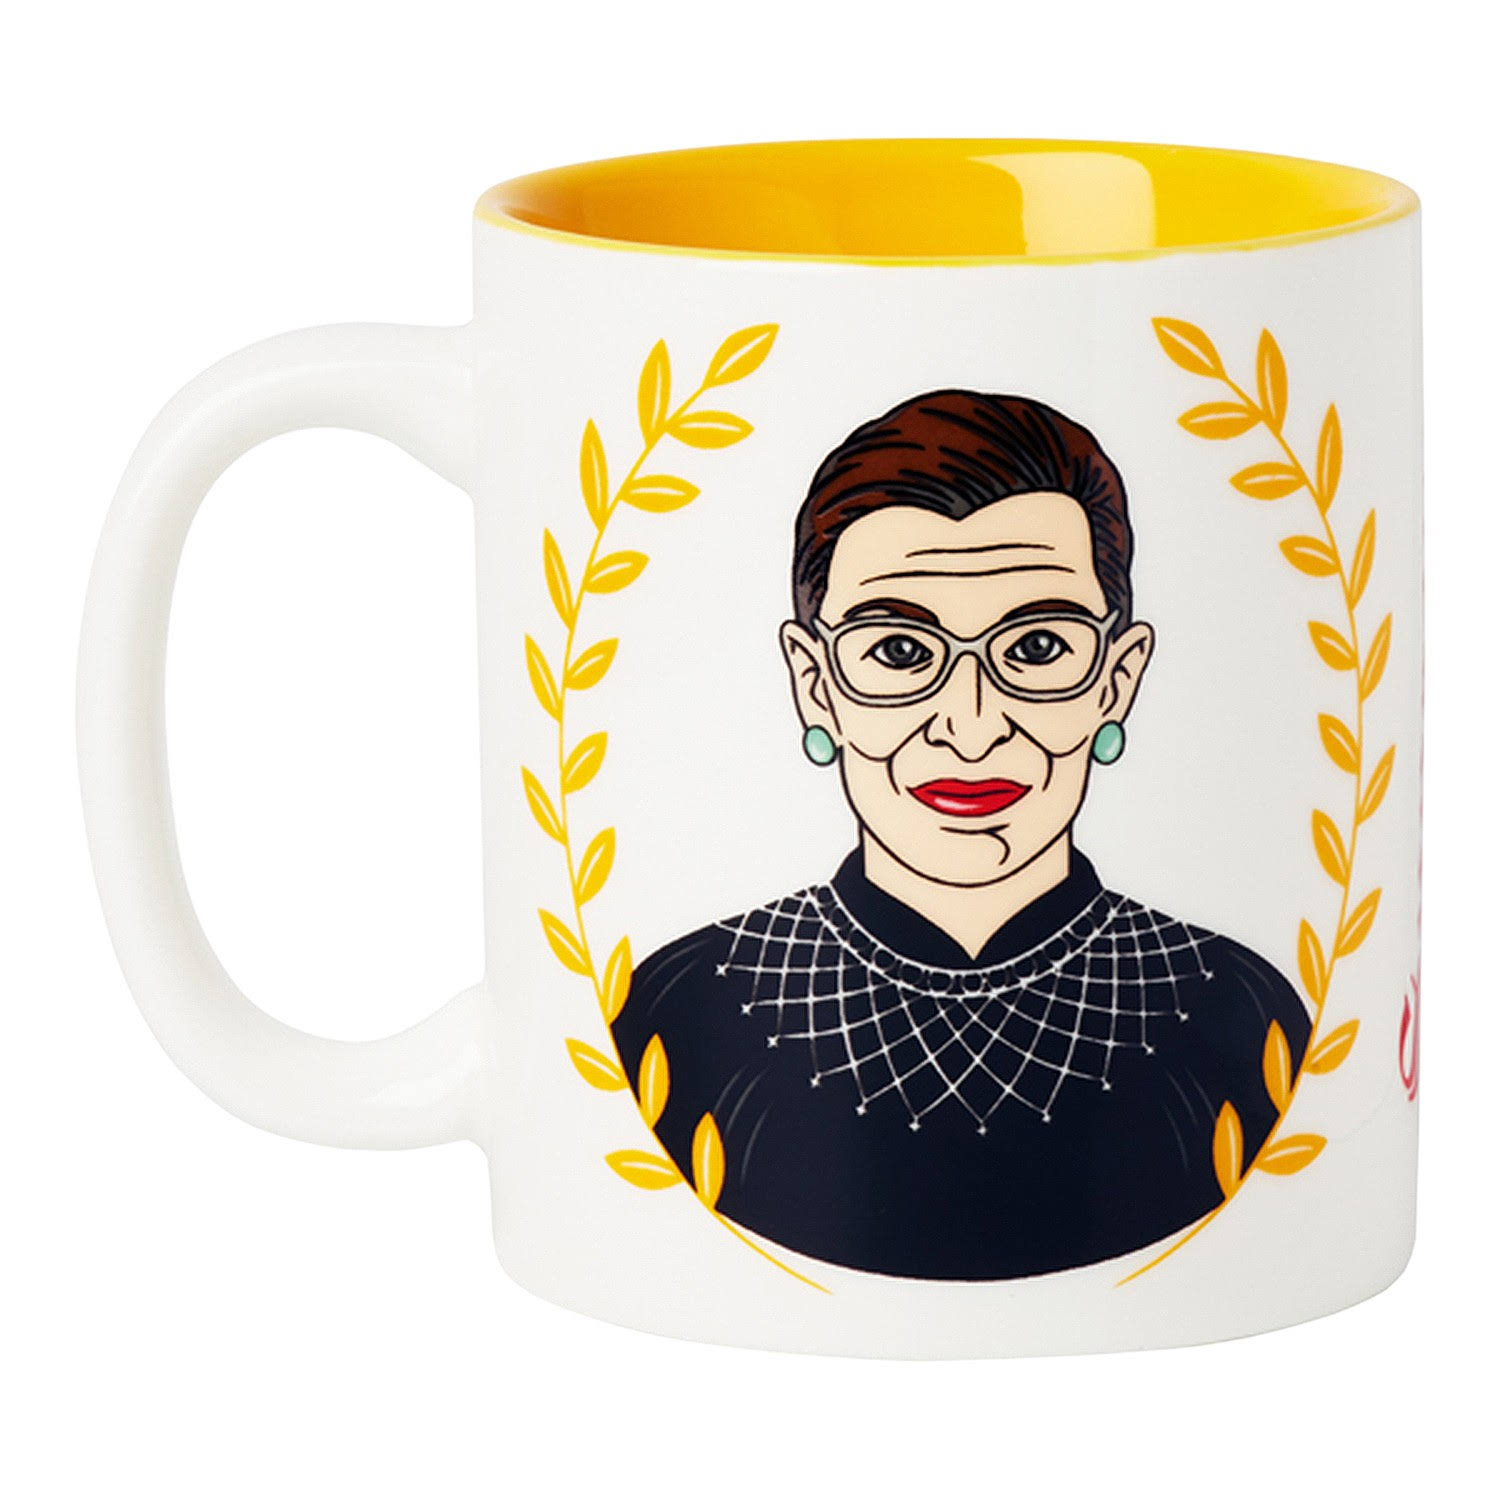 The found-ruth-bader-ginsburg-ceramic-mug